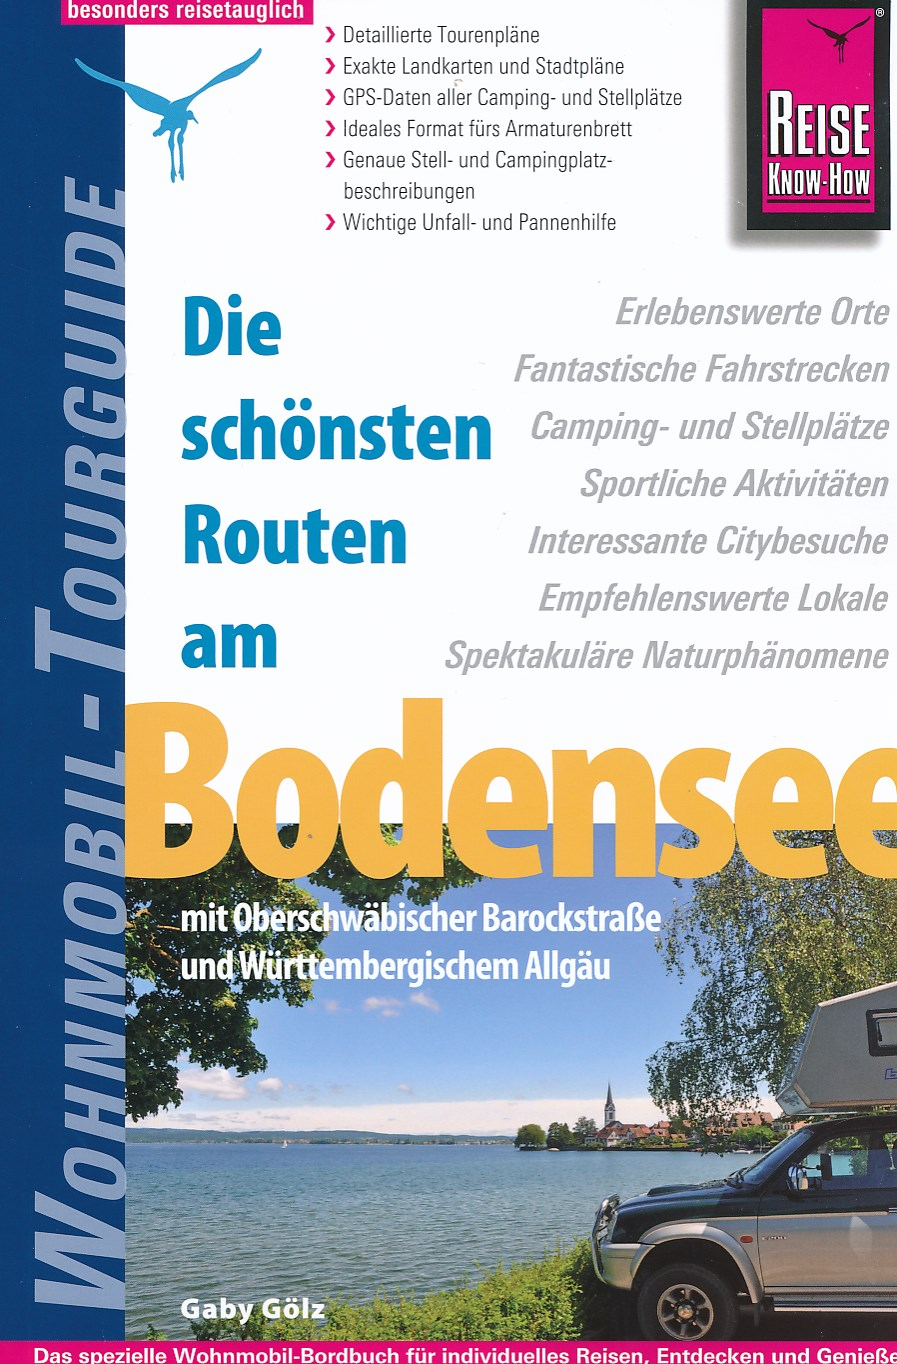 Campergids Die Schonsten Routen am Bodensee   Reise Know-How